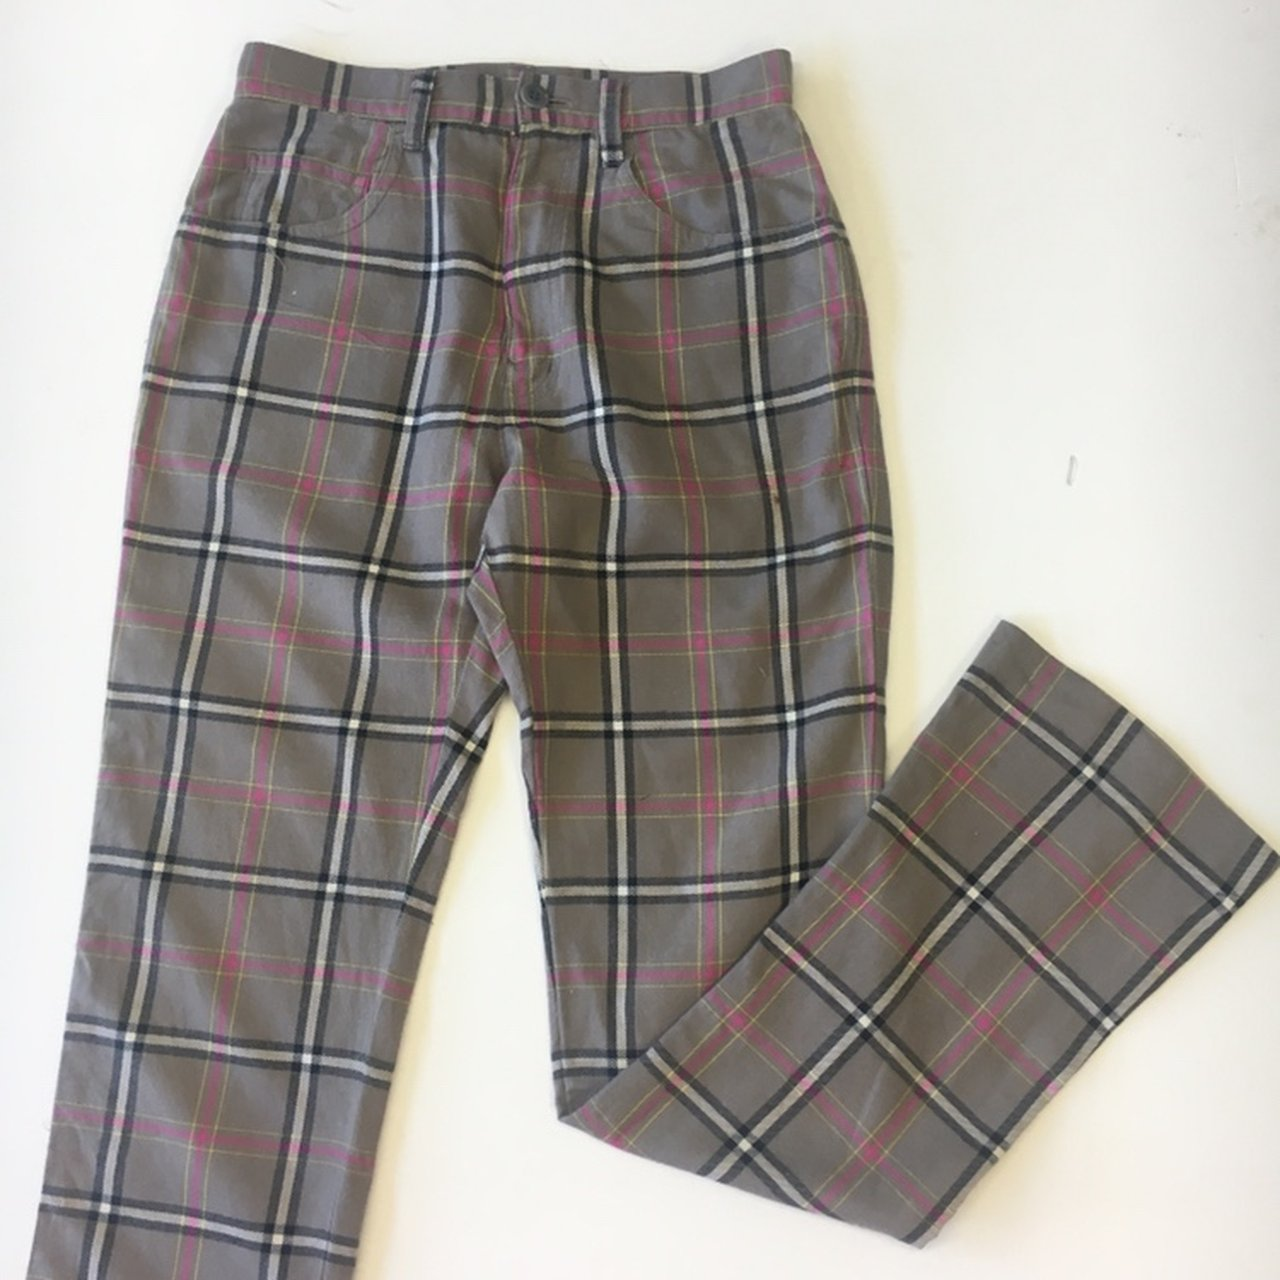 eefd37a0630 Super hip  90s  vintage  hystericglamour  plaid but good is - Depop